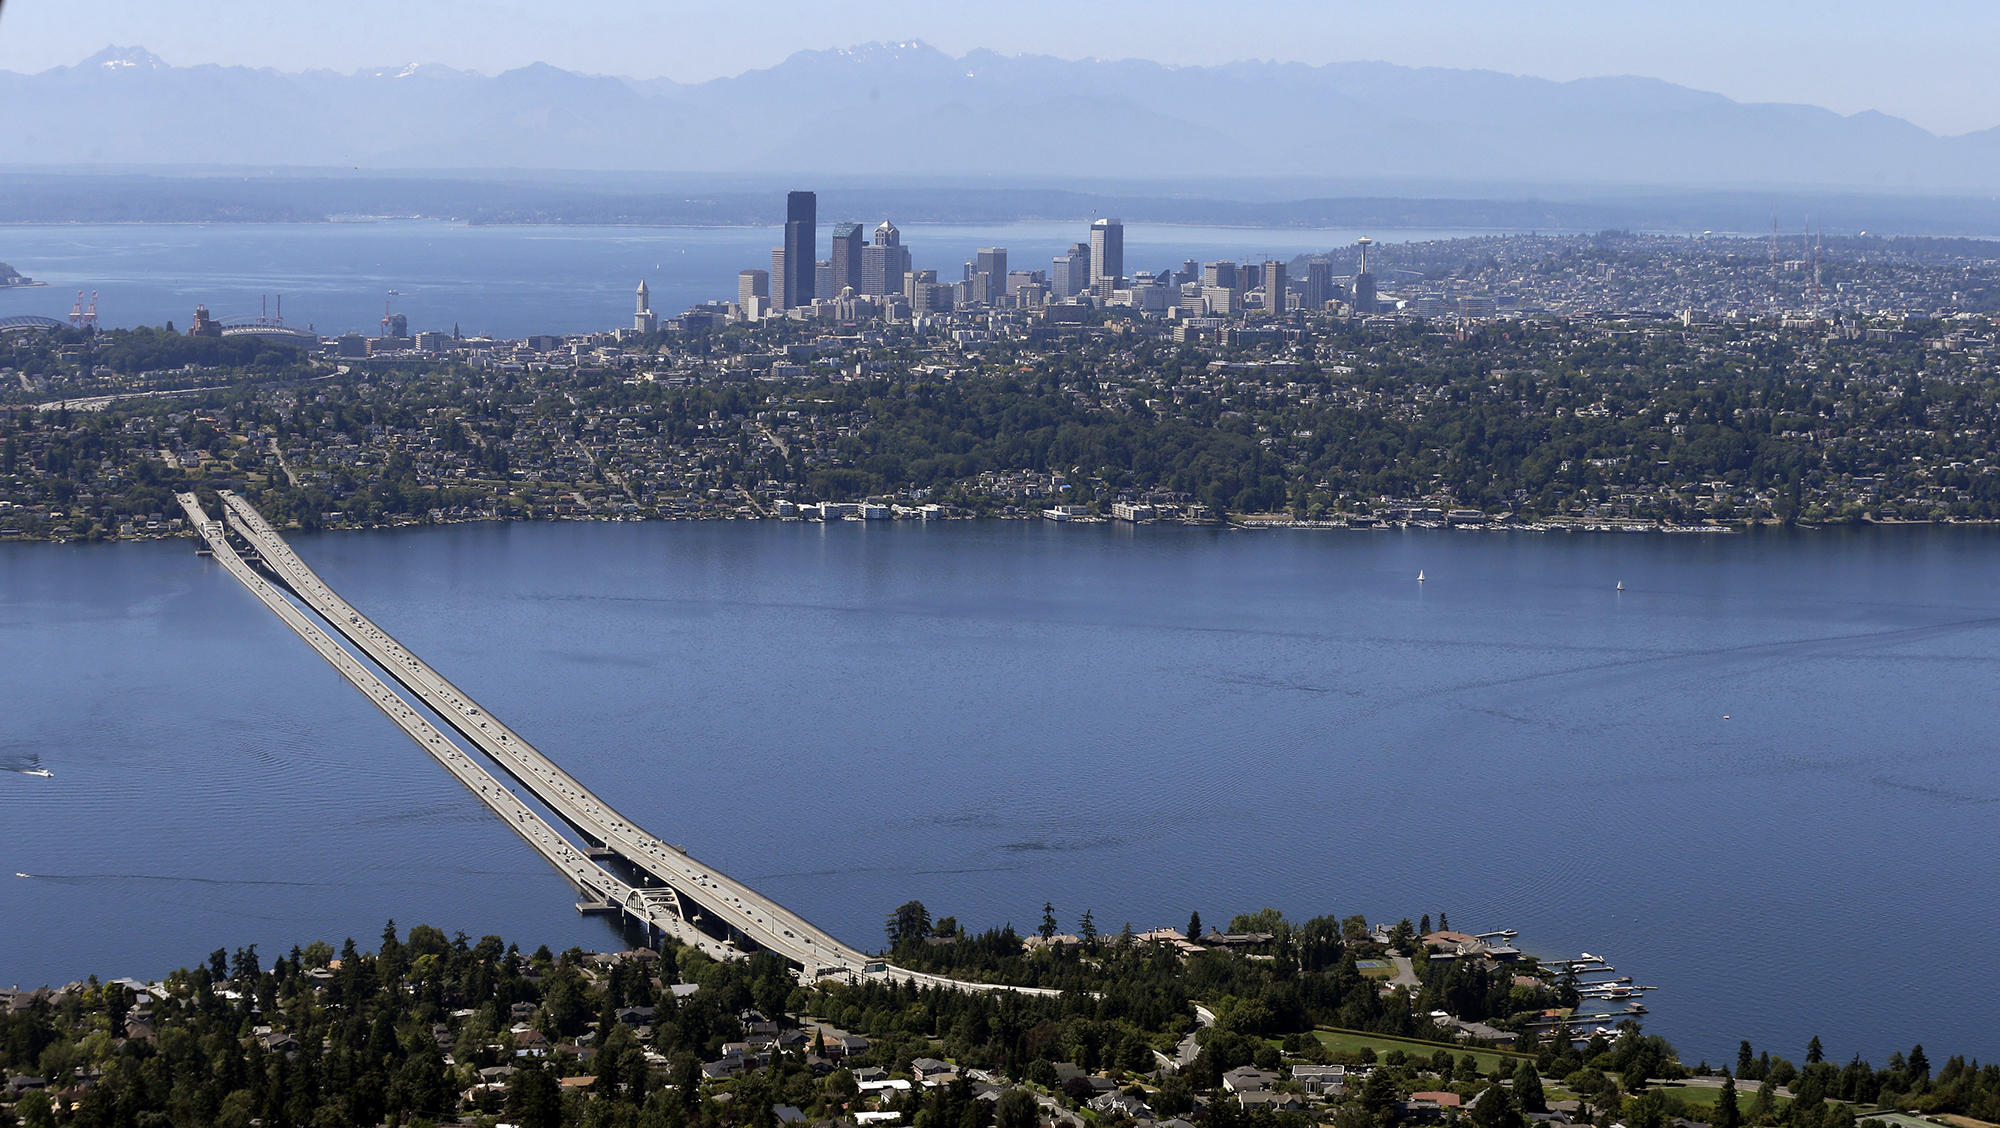 Seen from above, a hazy blue mountain range stands in the distance, with a city skyline and surrounding suburbs between two bodies of water. A floating highway bridge leads across the water.